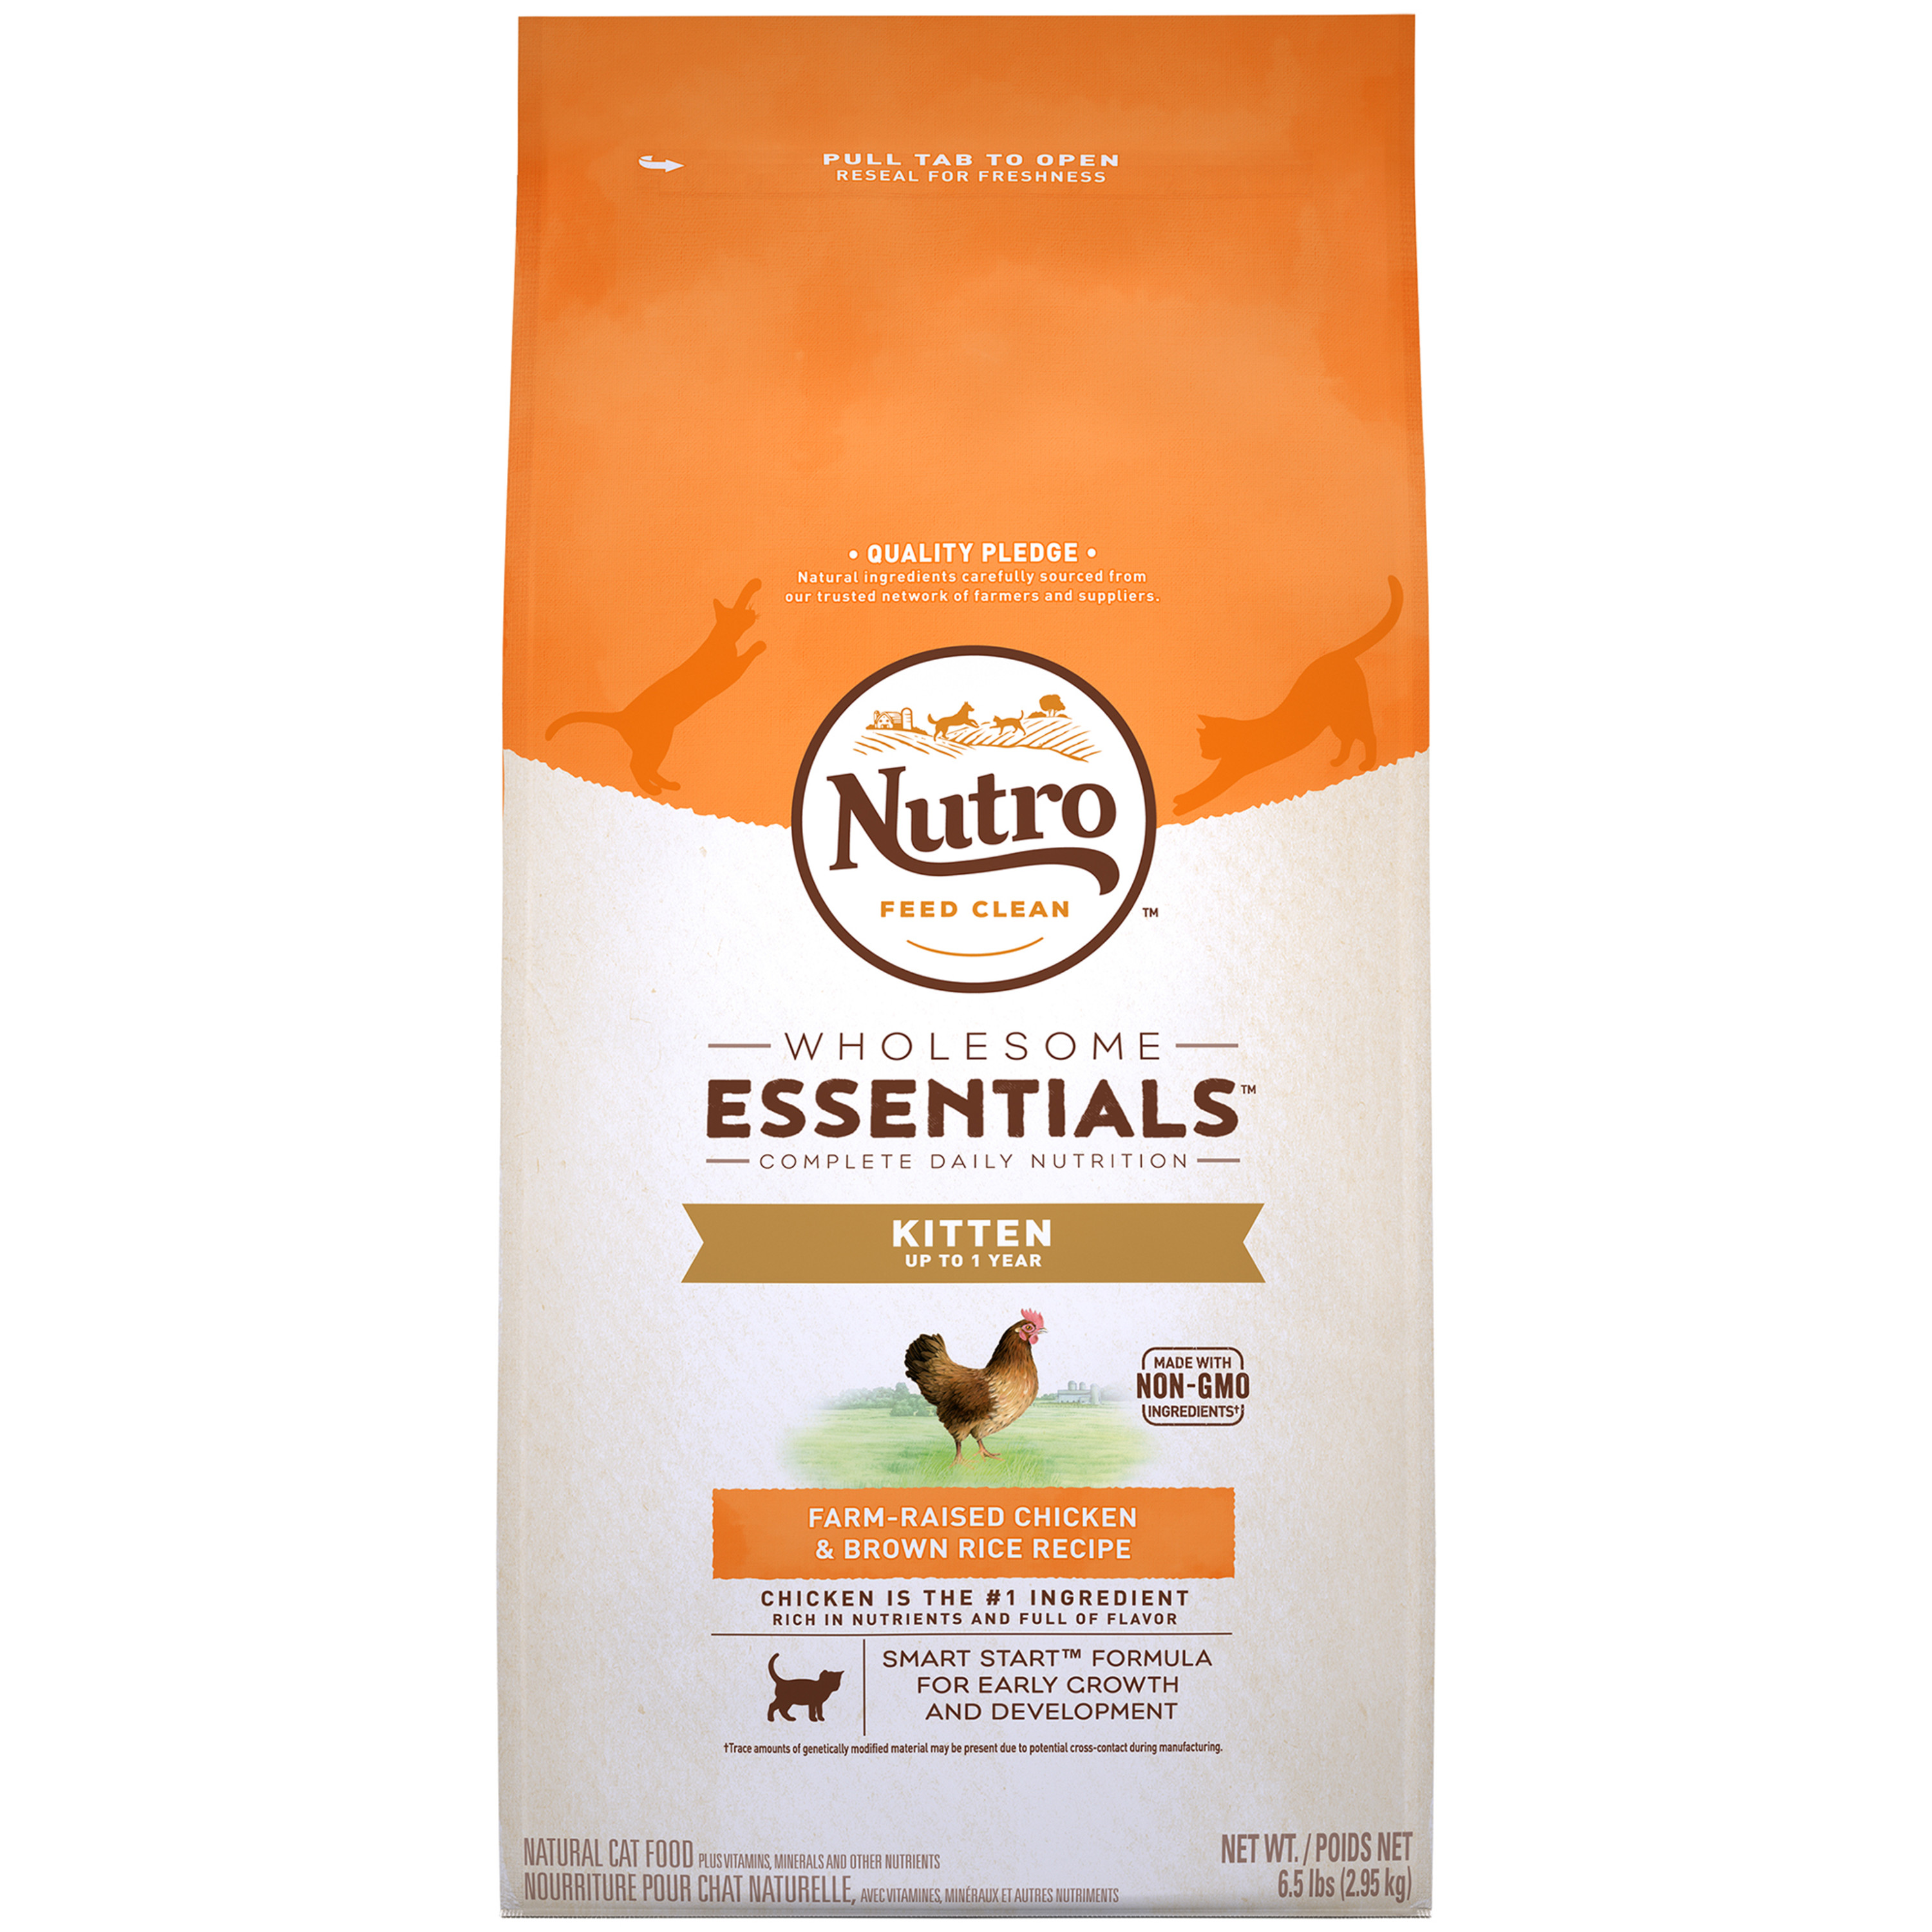 Nutro Wholesome Essentials Farm-Raised Chicken & Brown Rice Recipe Dry Kitten Food, 6.5 Lb